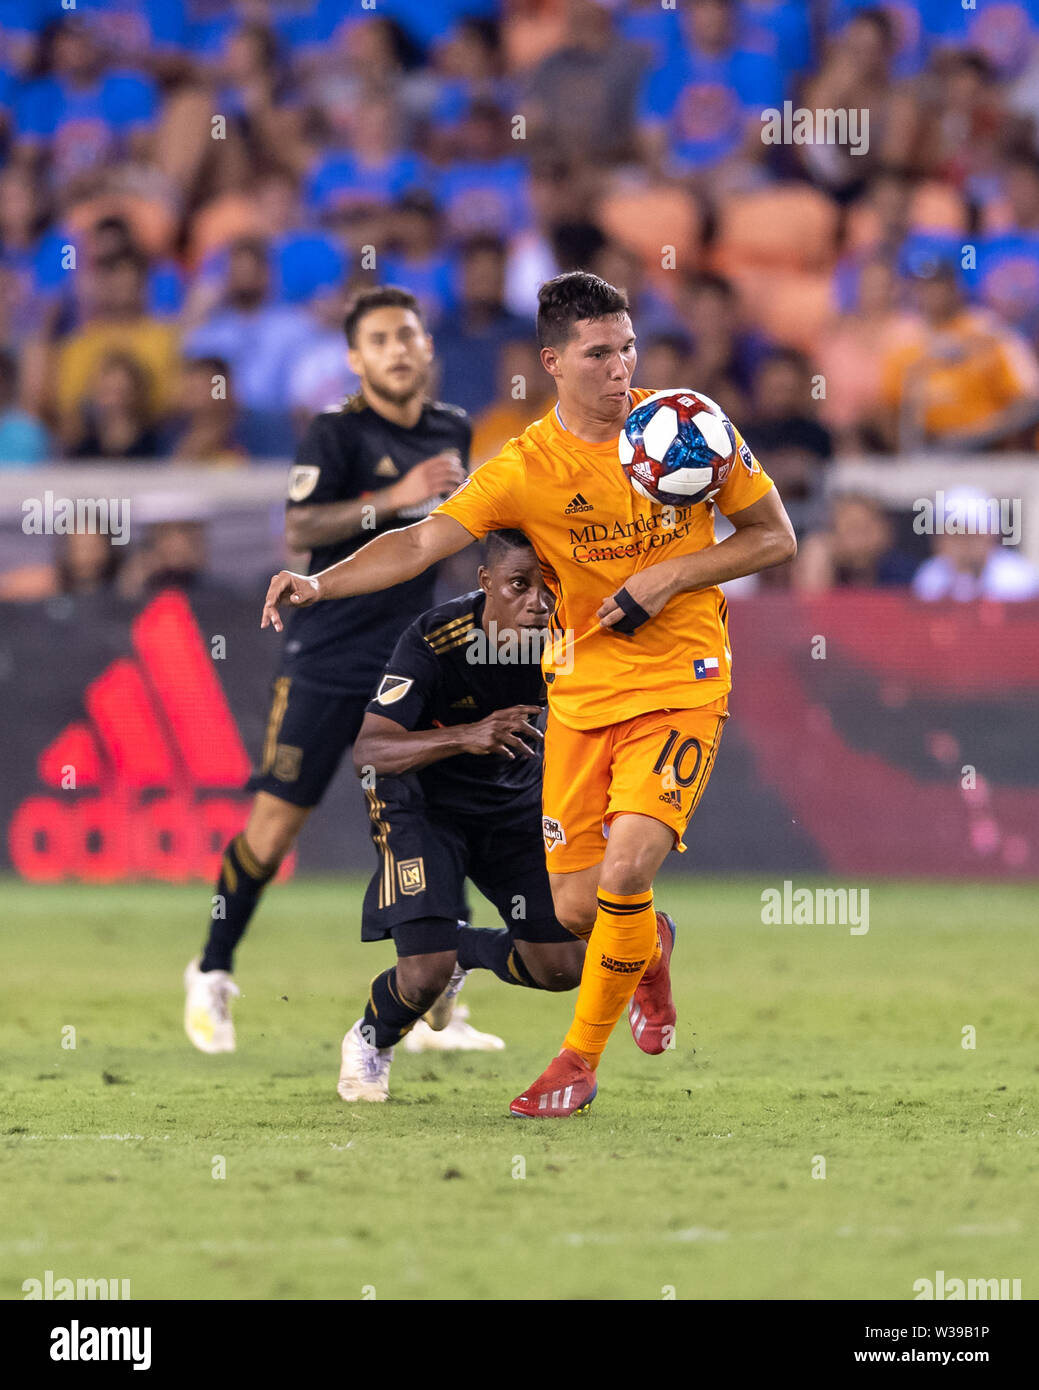 Houston, Texas, USA. 12th July, 2019. Houston Dynamo midfielder Tomas Martinez (10) looks to control the ball from Los Angeles FC forward Latif Blessing (7) during a match between Los Angeles FC and Houston Dynamo at BBVA Stadium in Houston, Texas. The final LAFC wins 3-1. Maria Lysaker/CSM/Alamy Live News - Stock Image